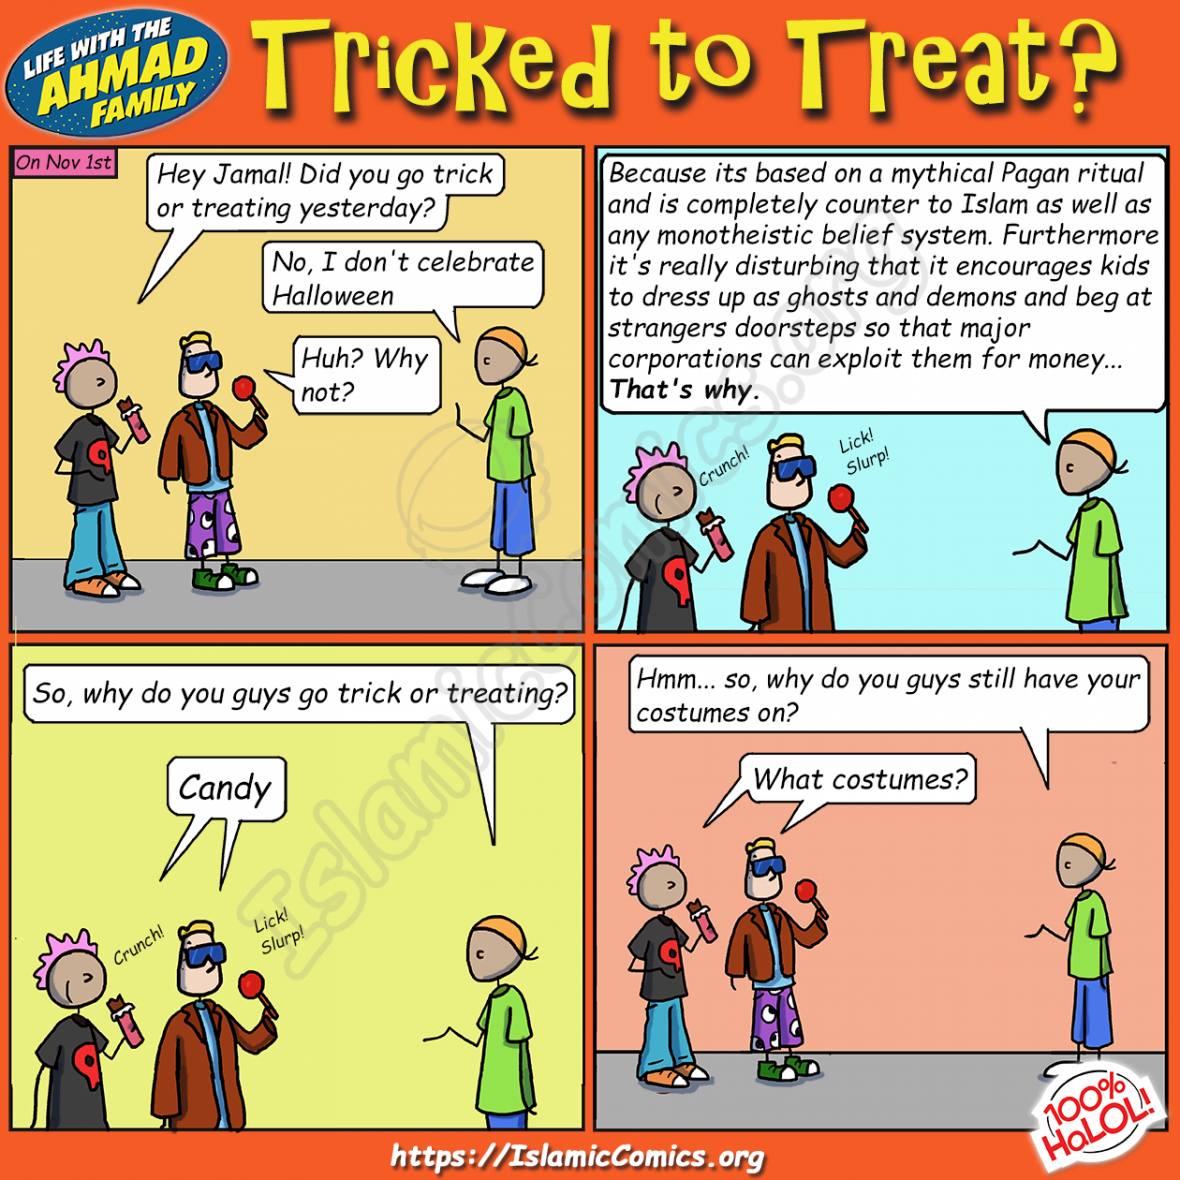 Tricked to Treat - Ahmad Family Comic